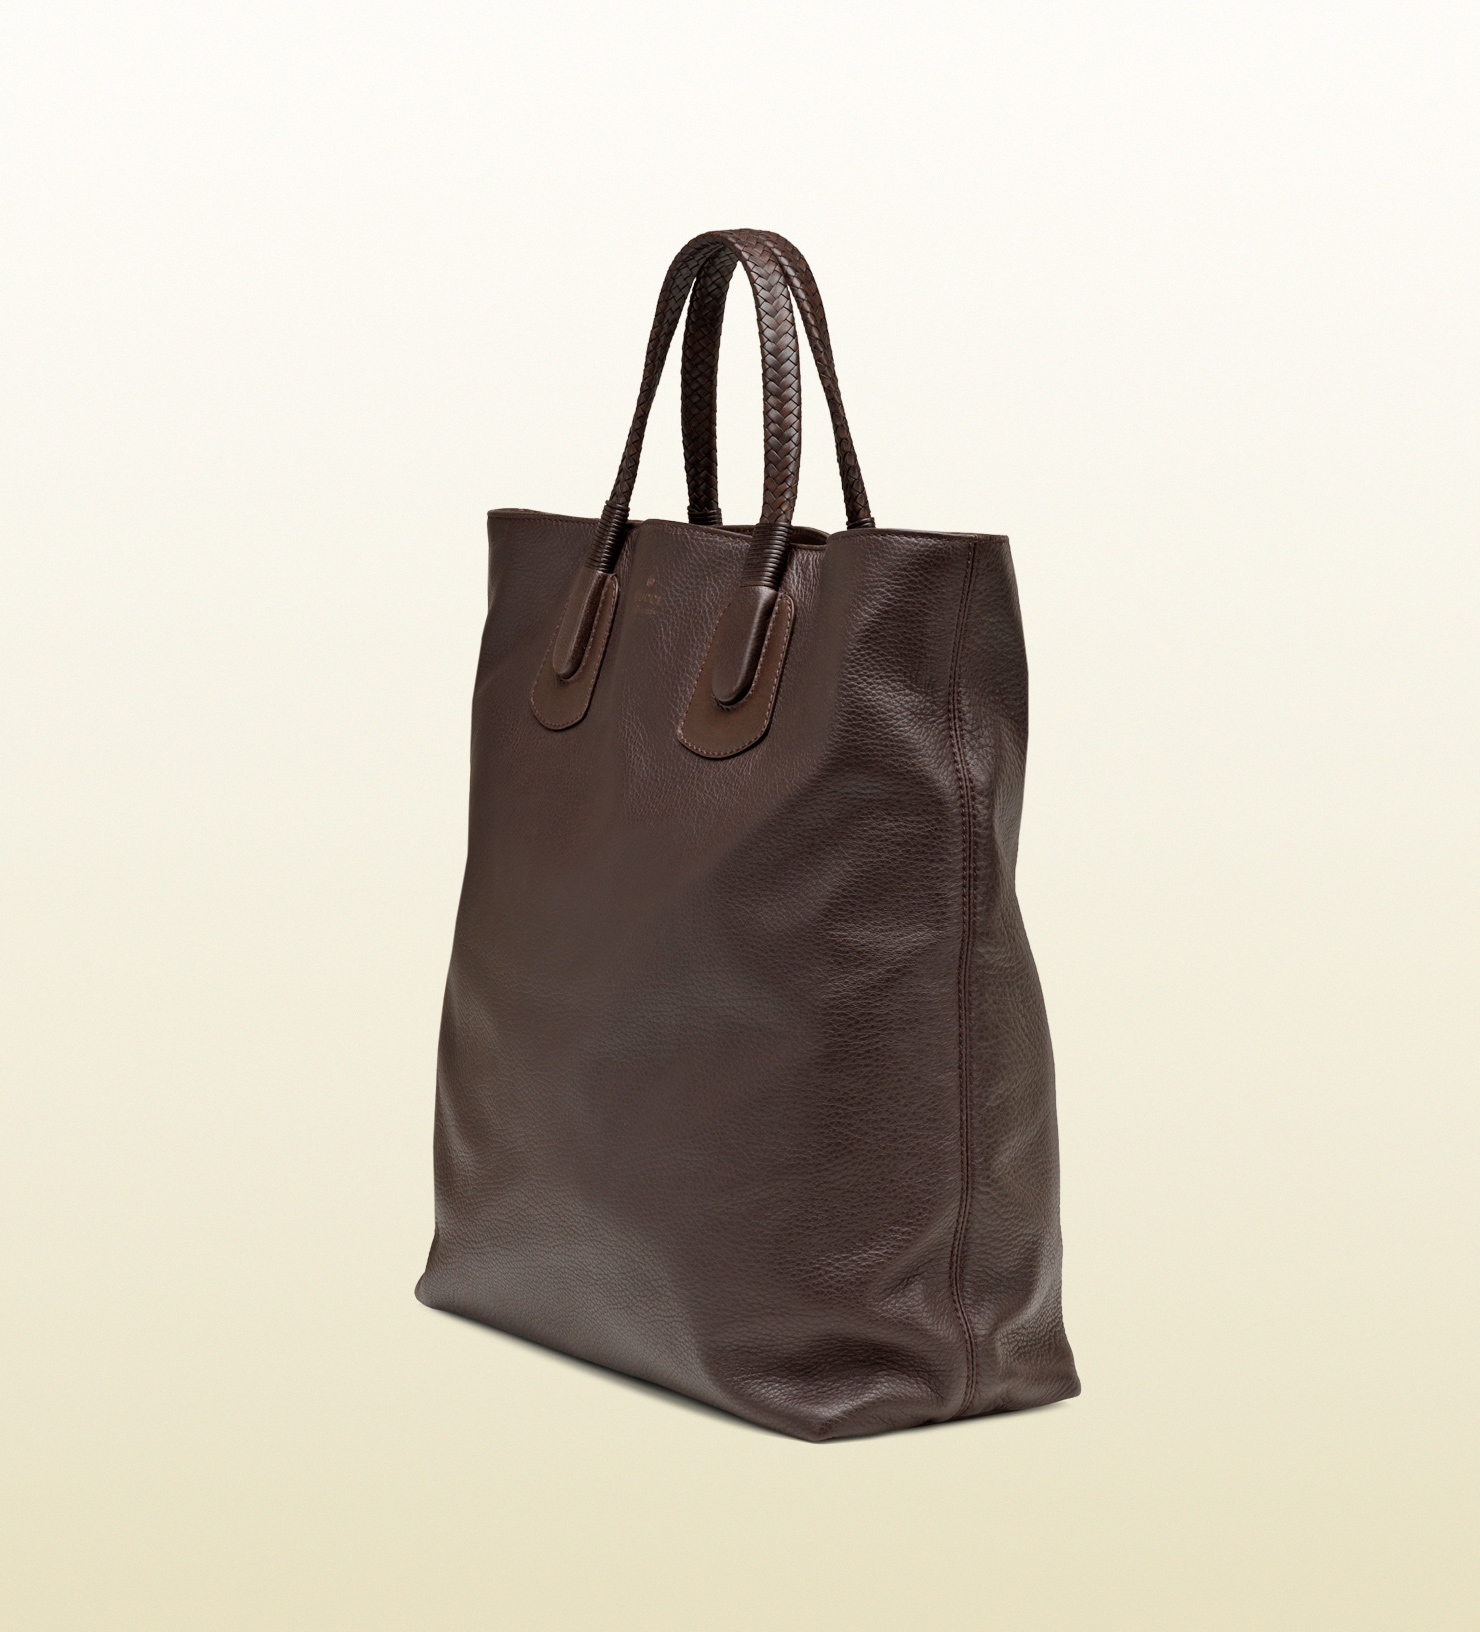 5317345f5c44d Gucci Dark Brown Leather Tote Bag in Brown - Lyst